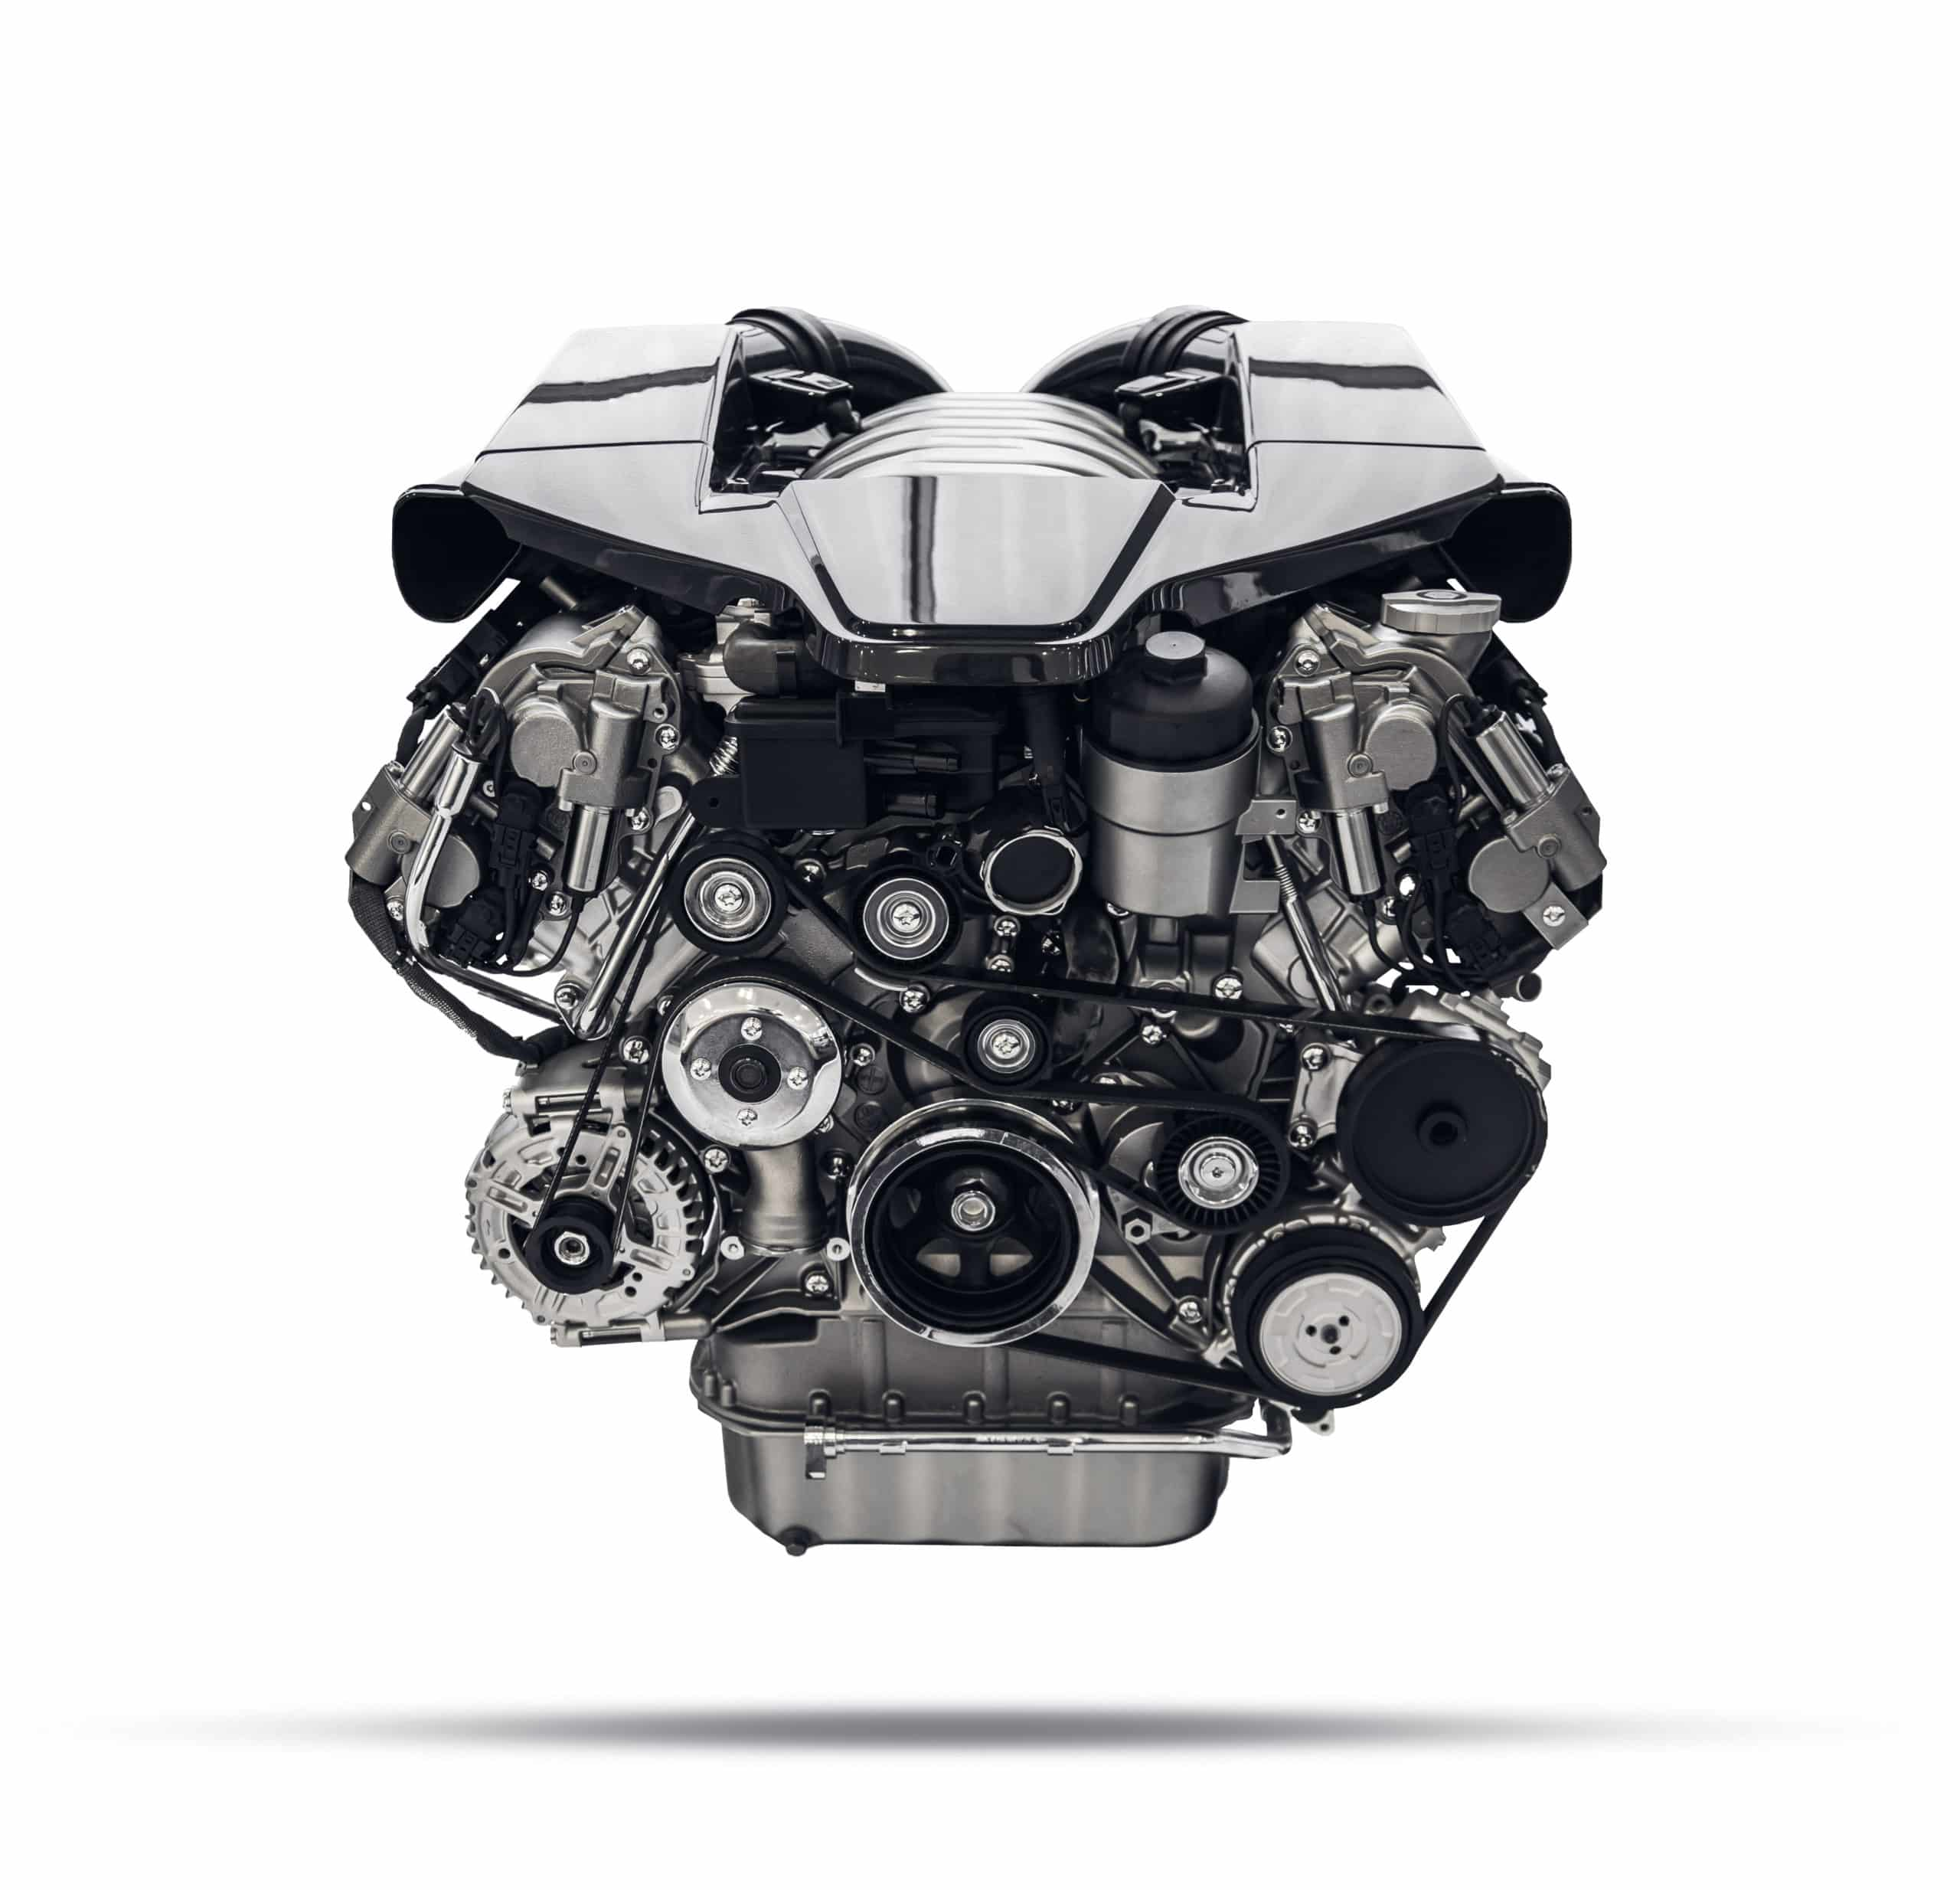 auto, car, or vehicle engine